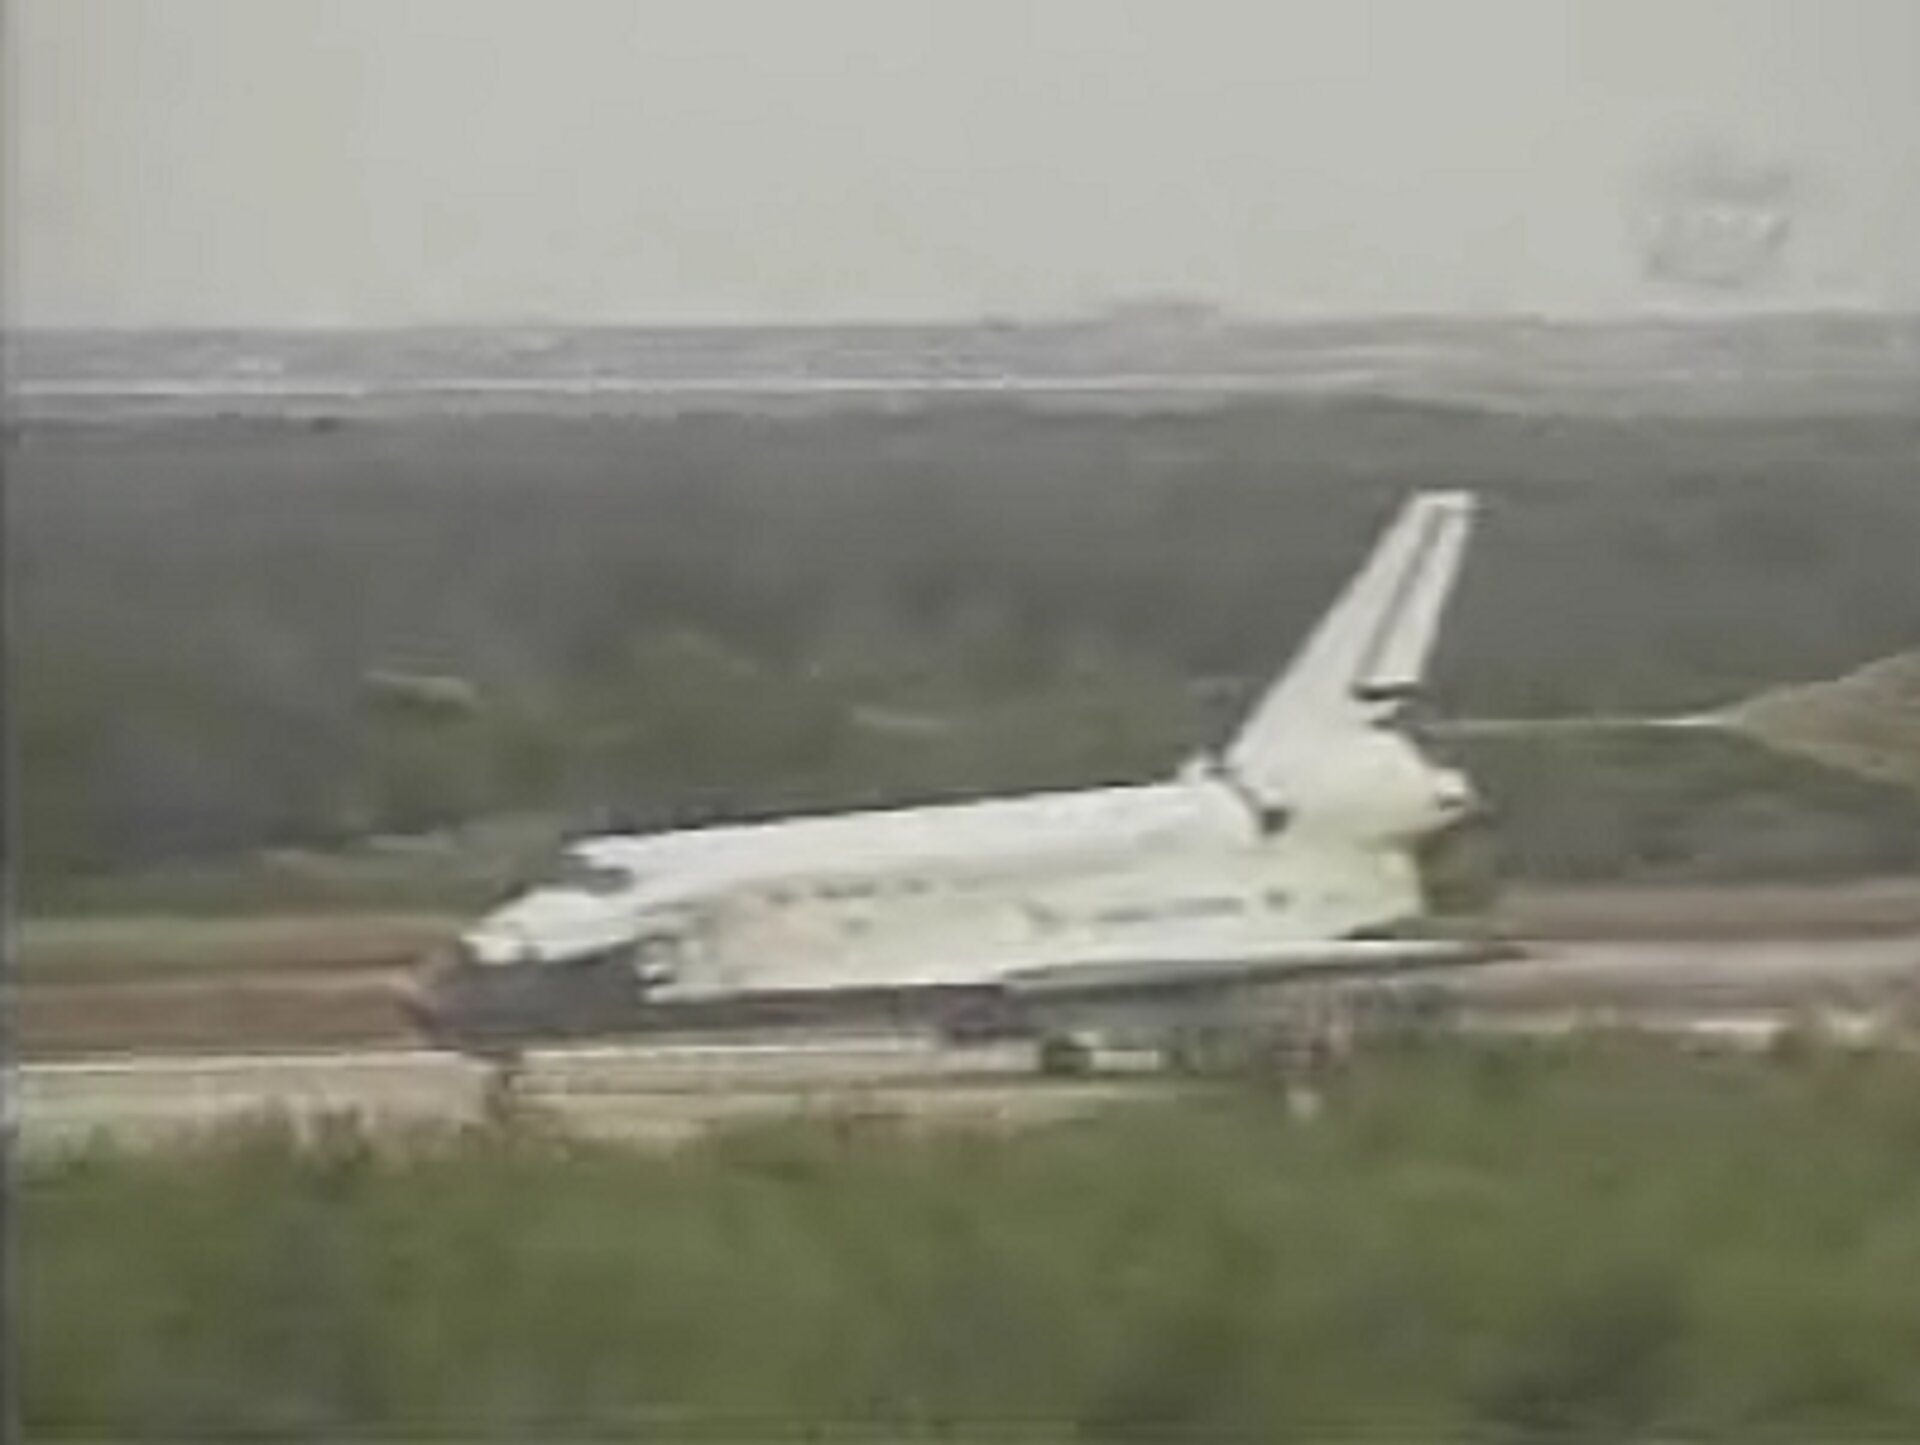 Space Shuttle Discovery lands at KSC concluding the STS-121 mission